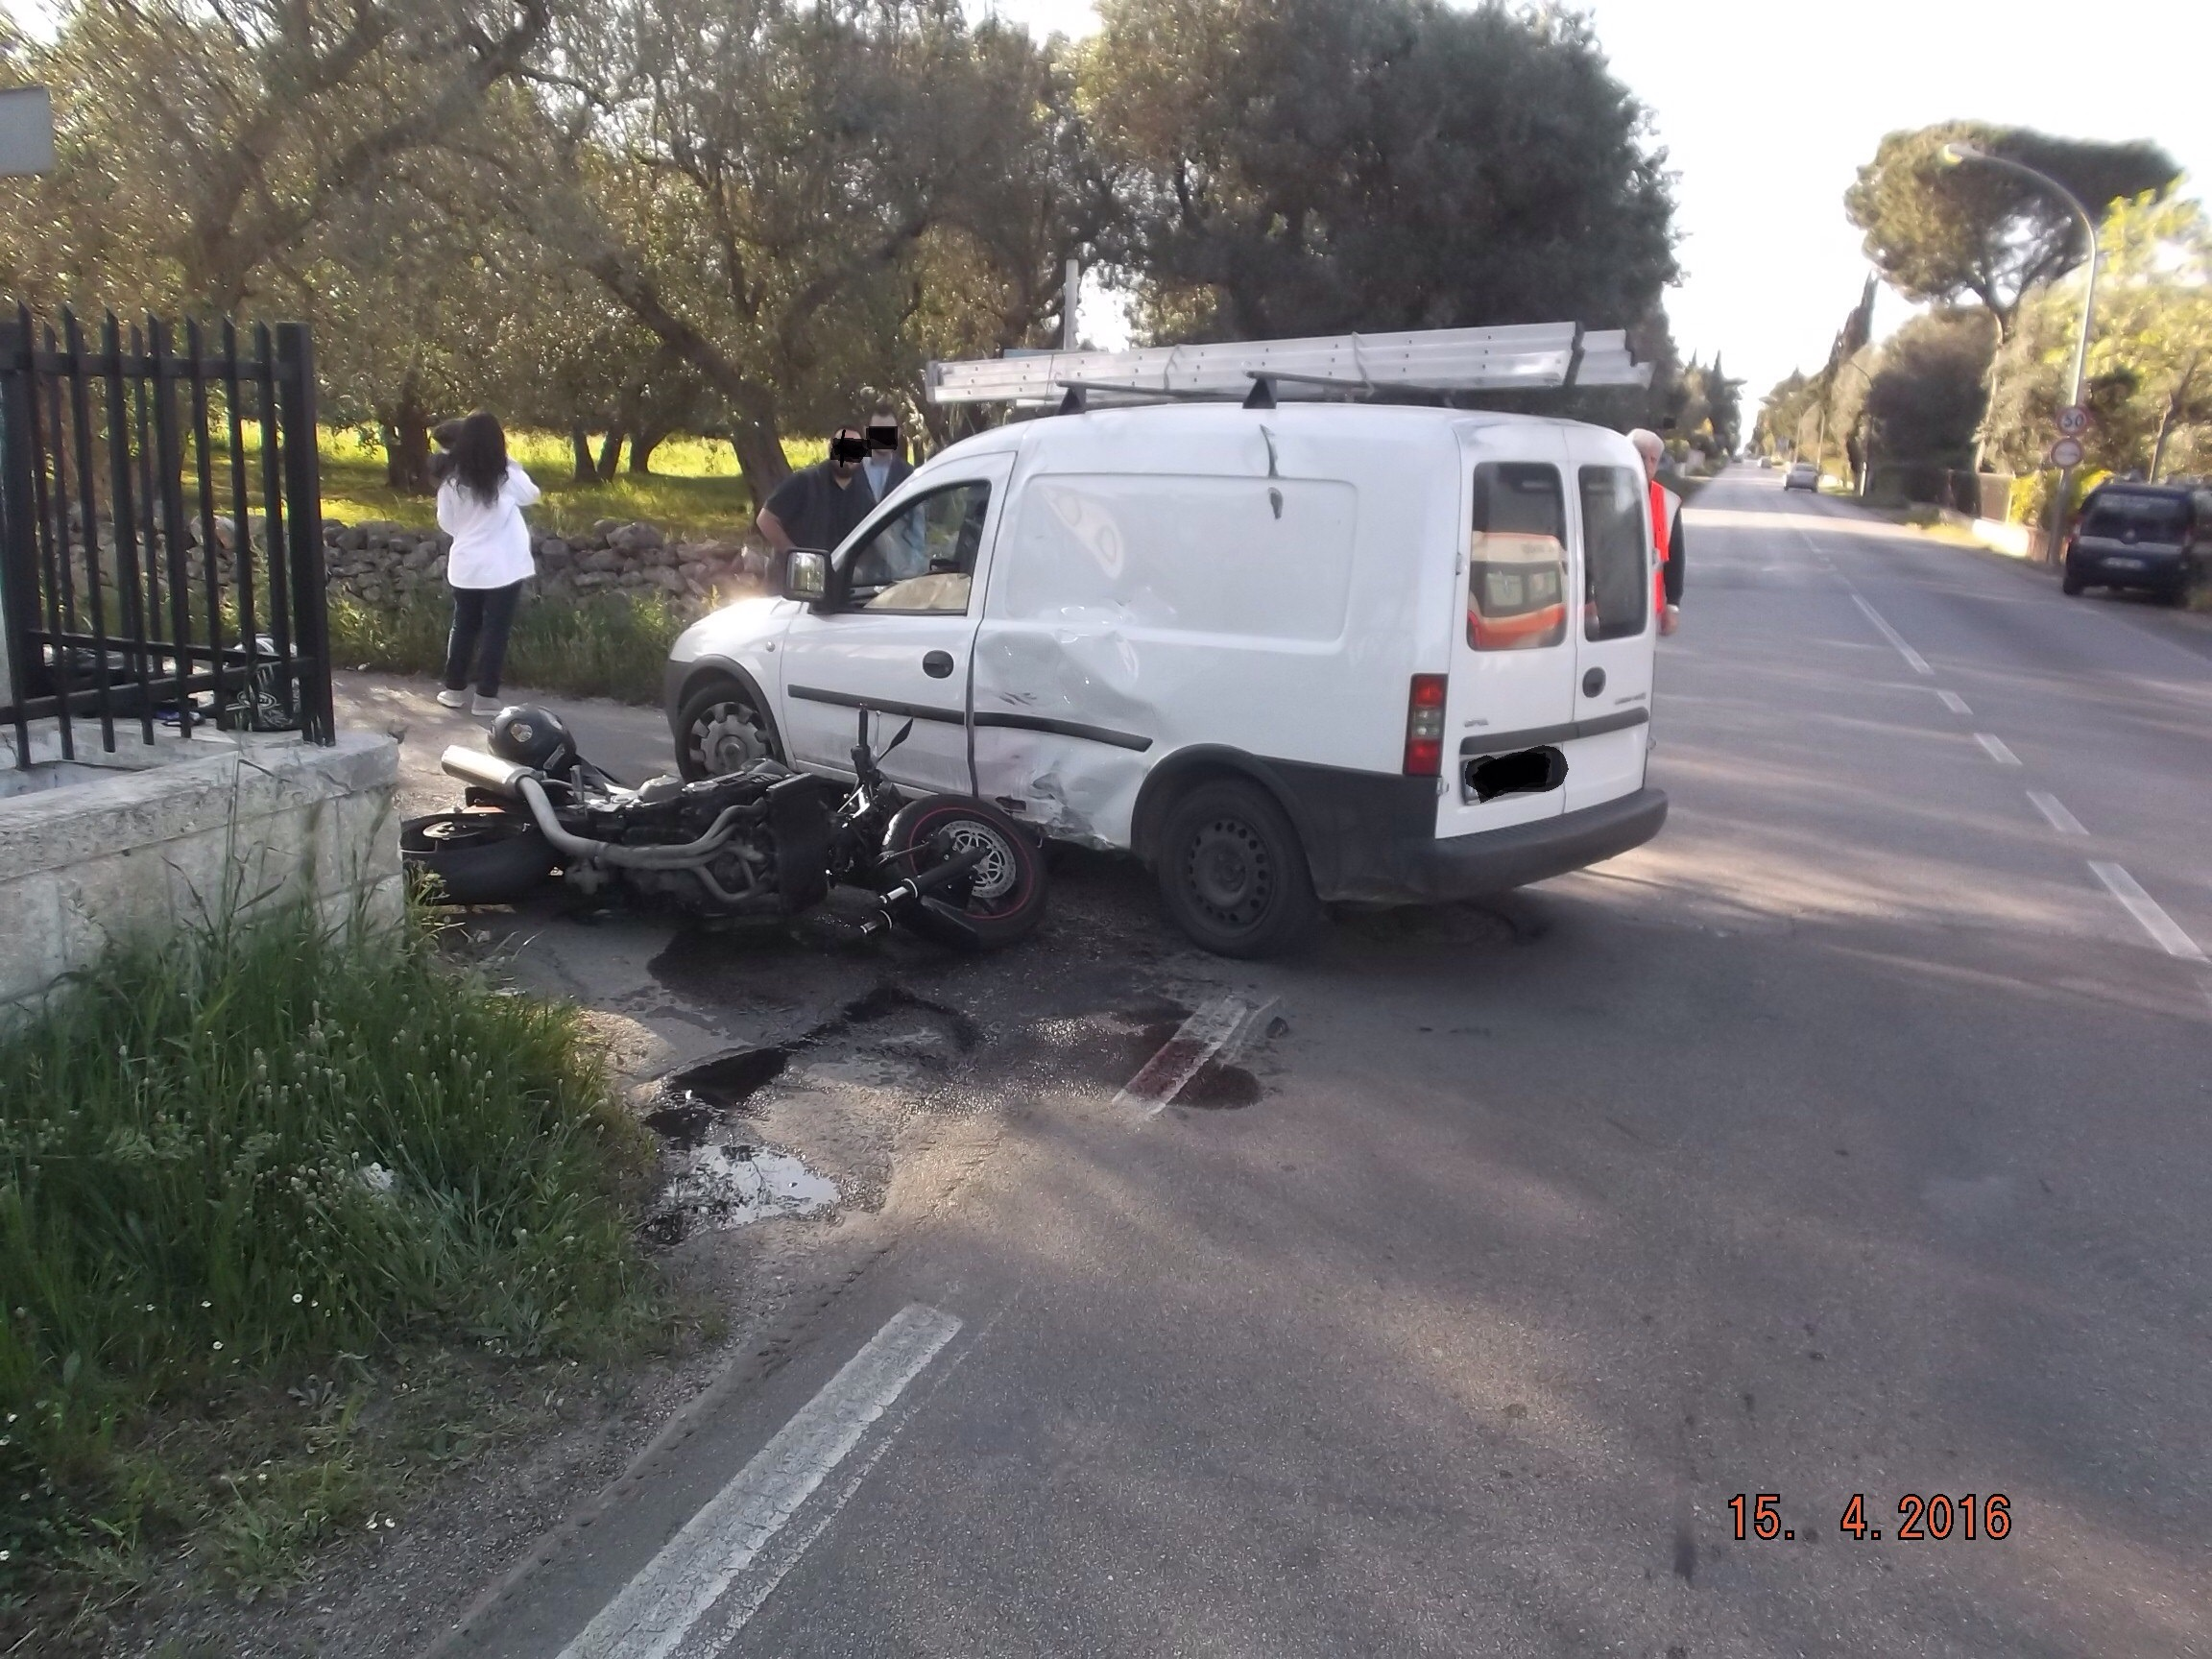 Incidente su via San Vito tra una moto e un furgone